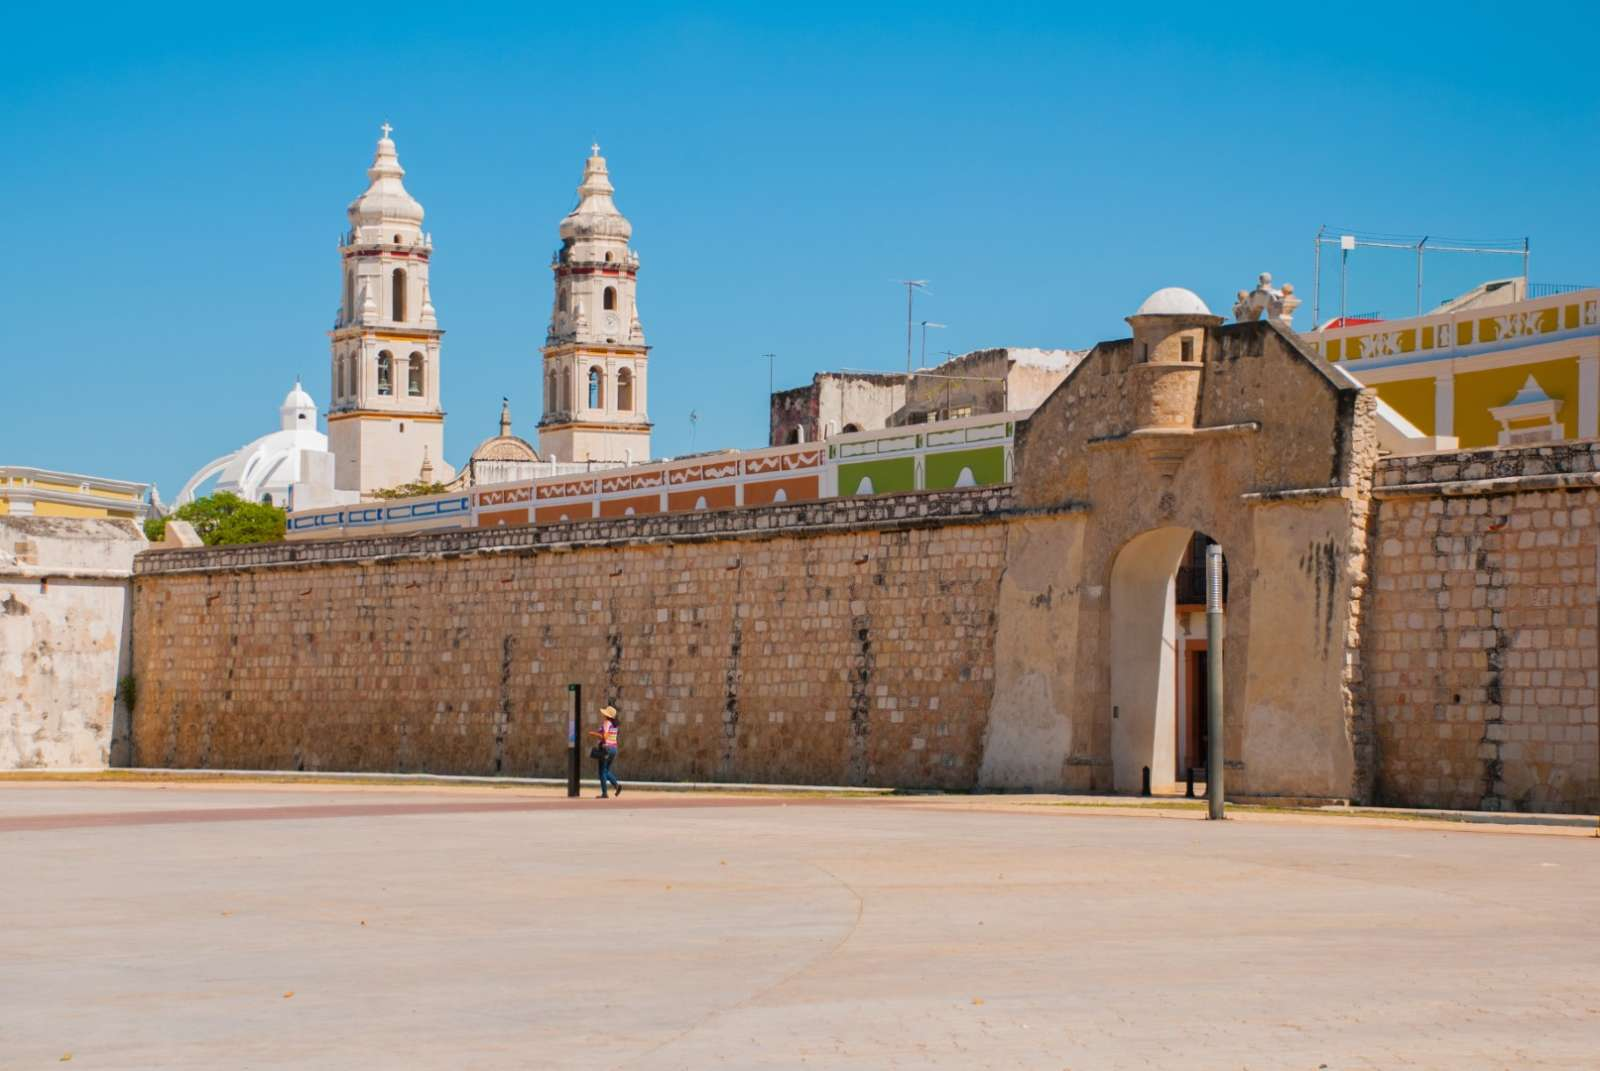 View of cathedral behind city wall in Campeche Mexico